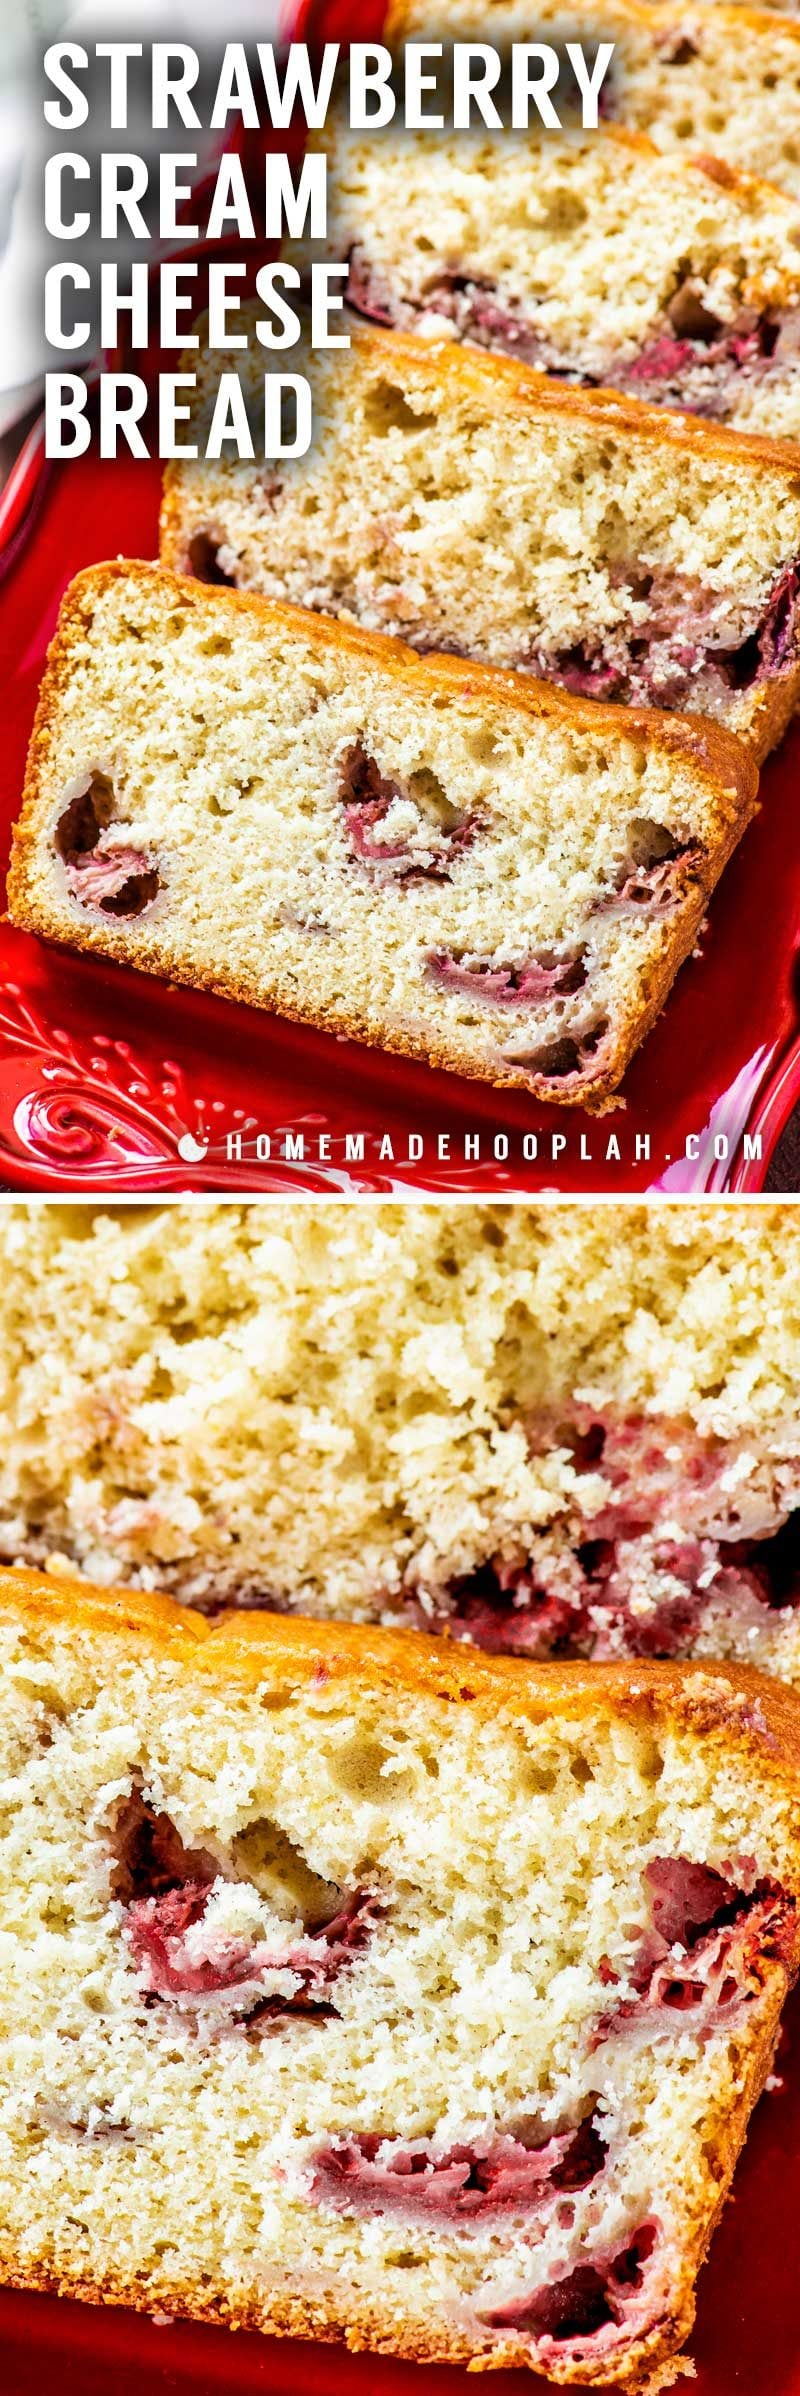 How to make strawberry cream cheese bread at home.